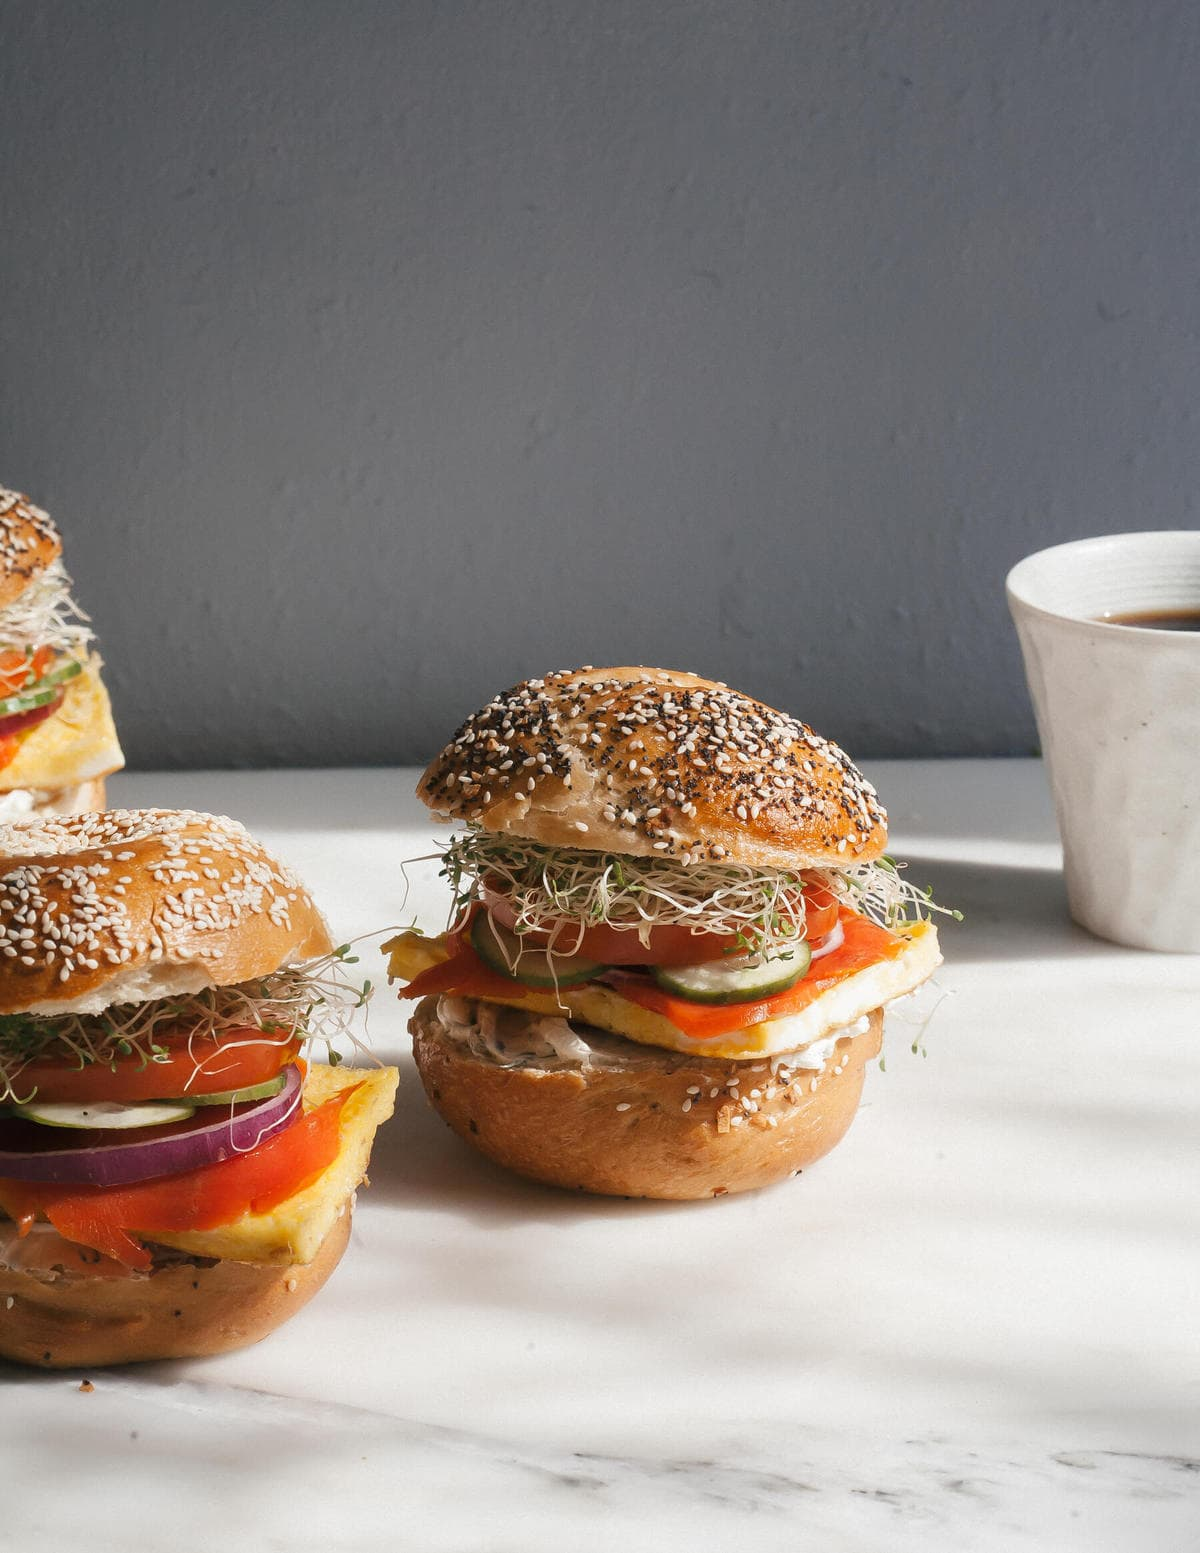 How to Make a Bagel Sandwich